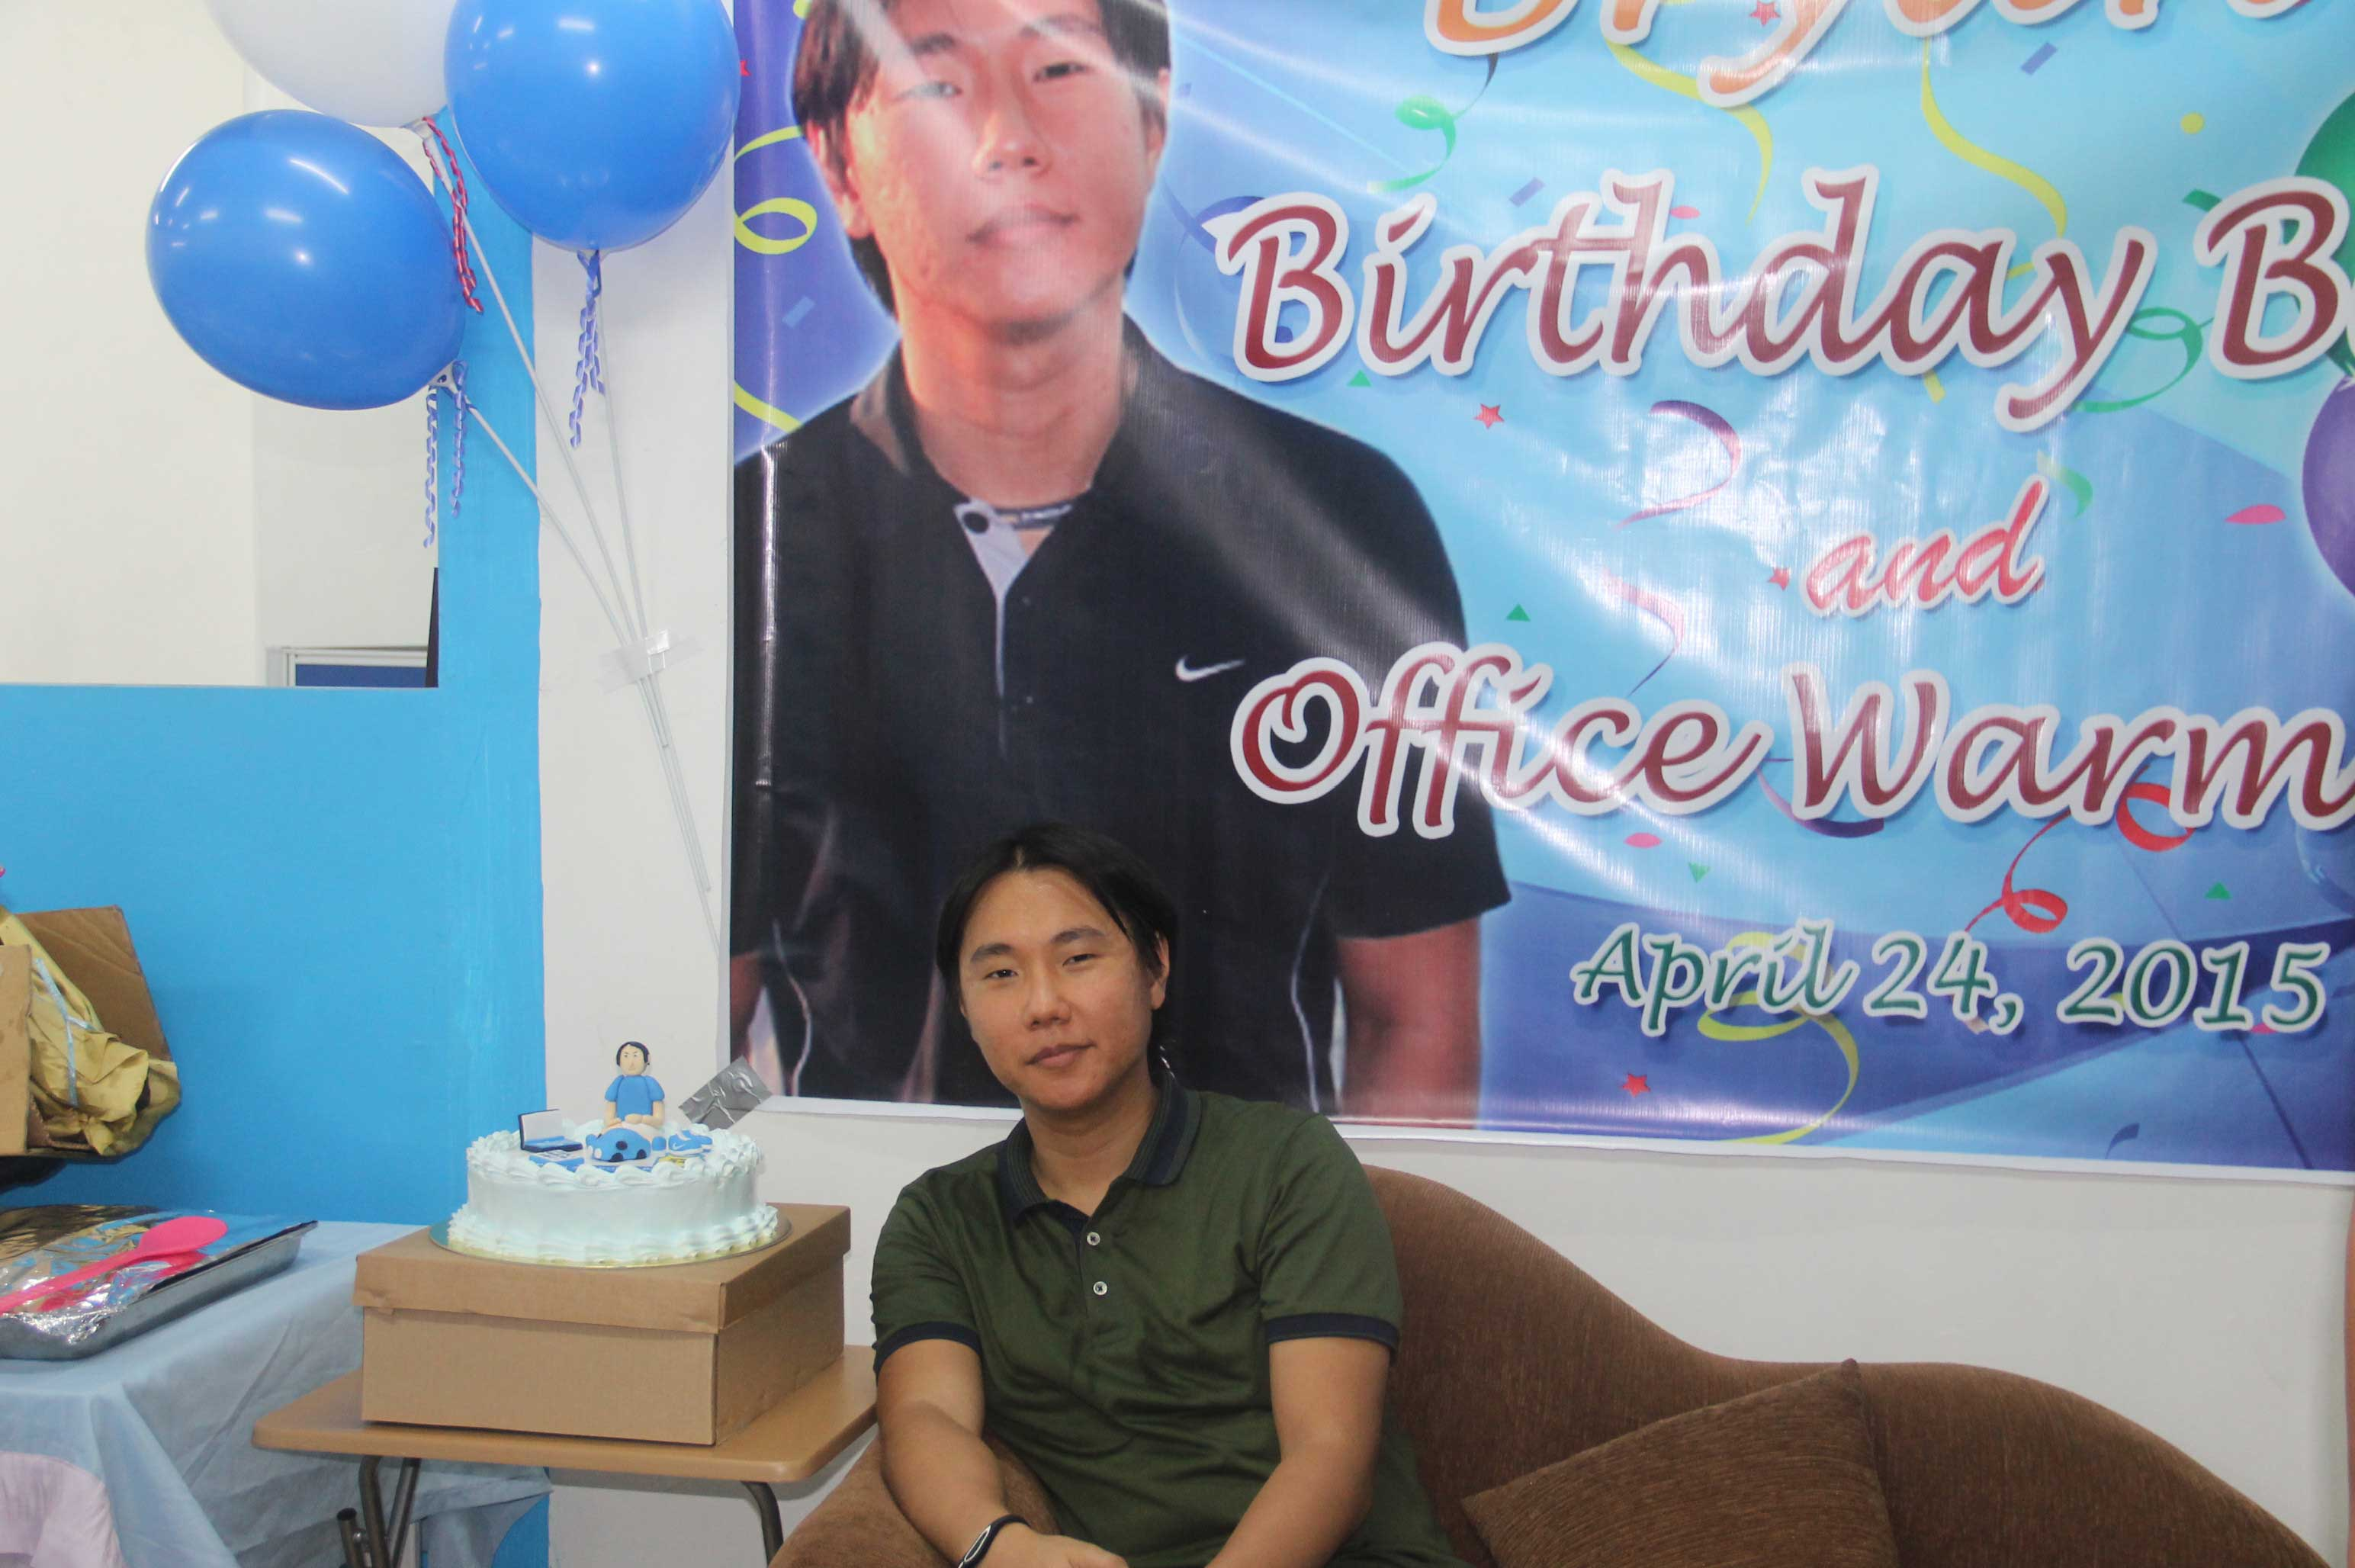 A Glimpse Of Back-to-Back Celebration: LBI's President's Birthday And Office Warming